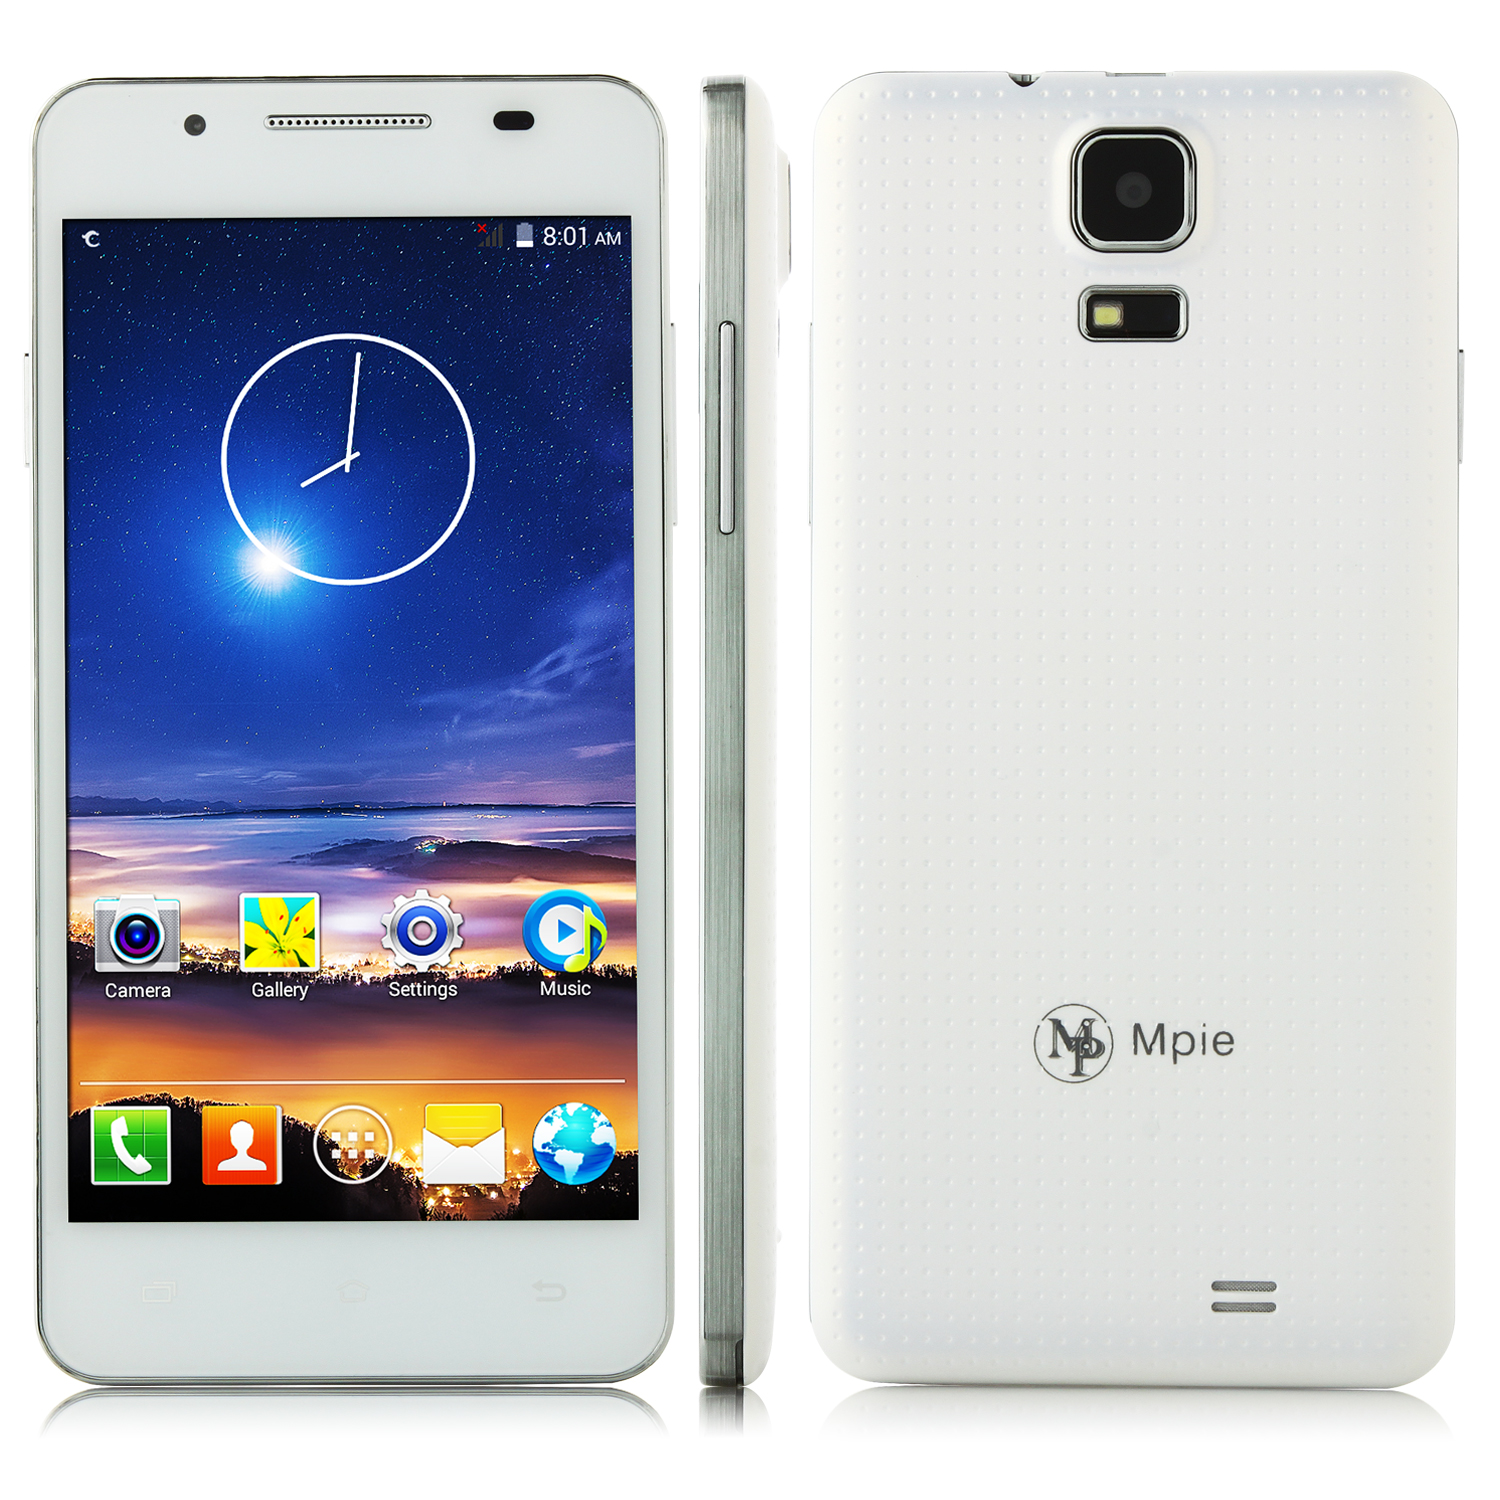 Mpie MP158+ Smartphone Android 4.4 MTK6582 Quad Core 5.0 Inch QHD Screen White